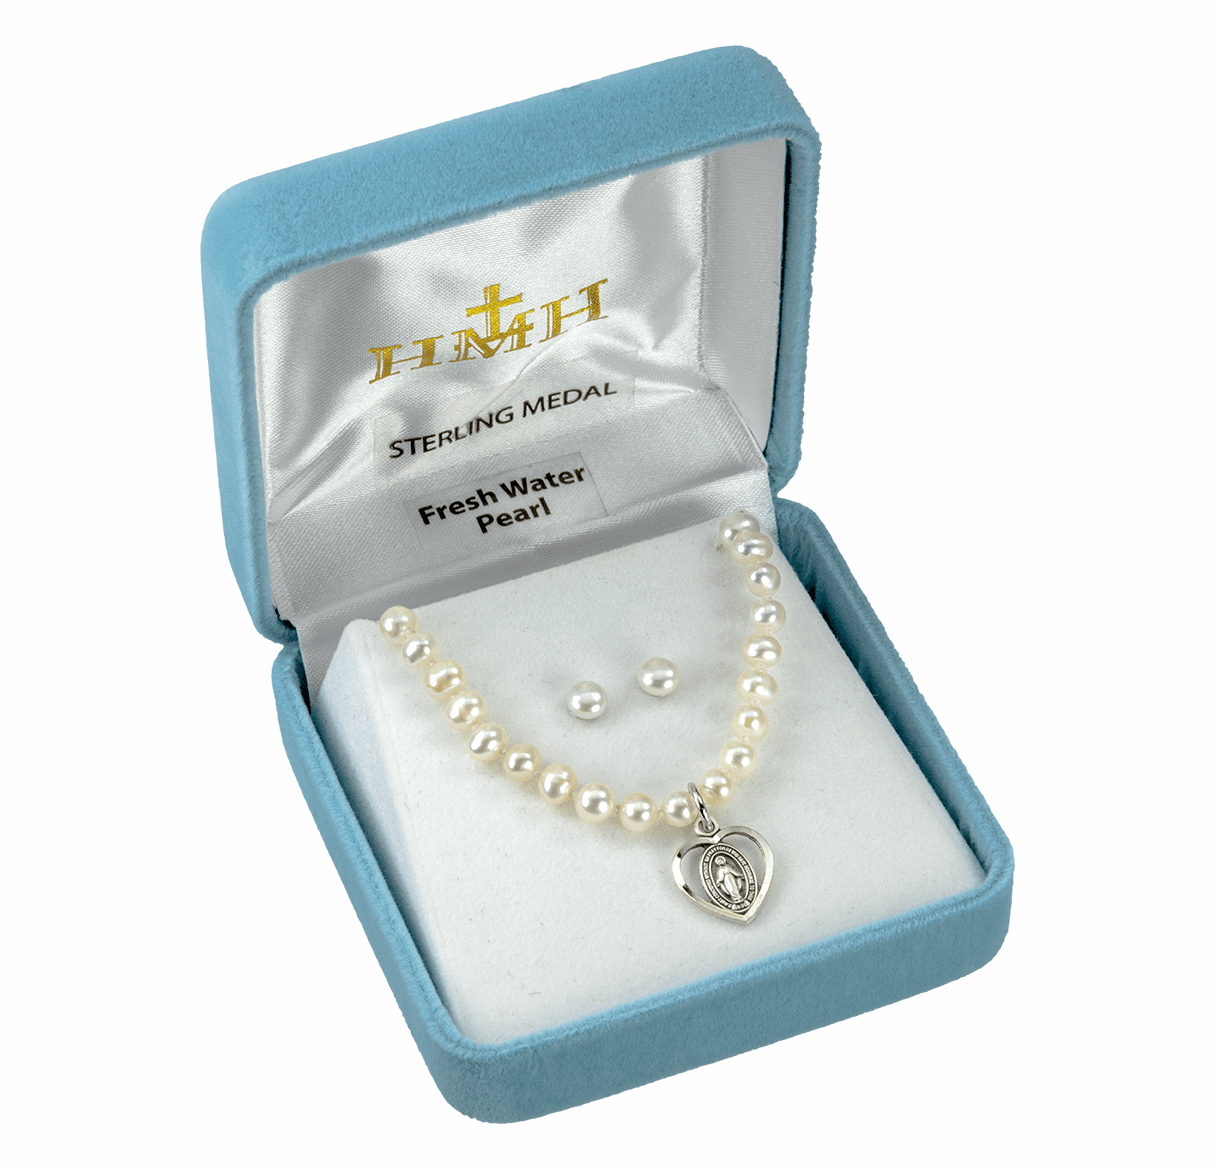 HMH Religious Miraculous Sterling Freshwater Pearls Earrings and Pendant Gift Set